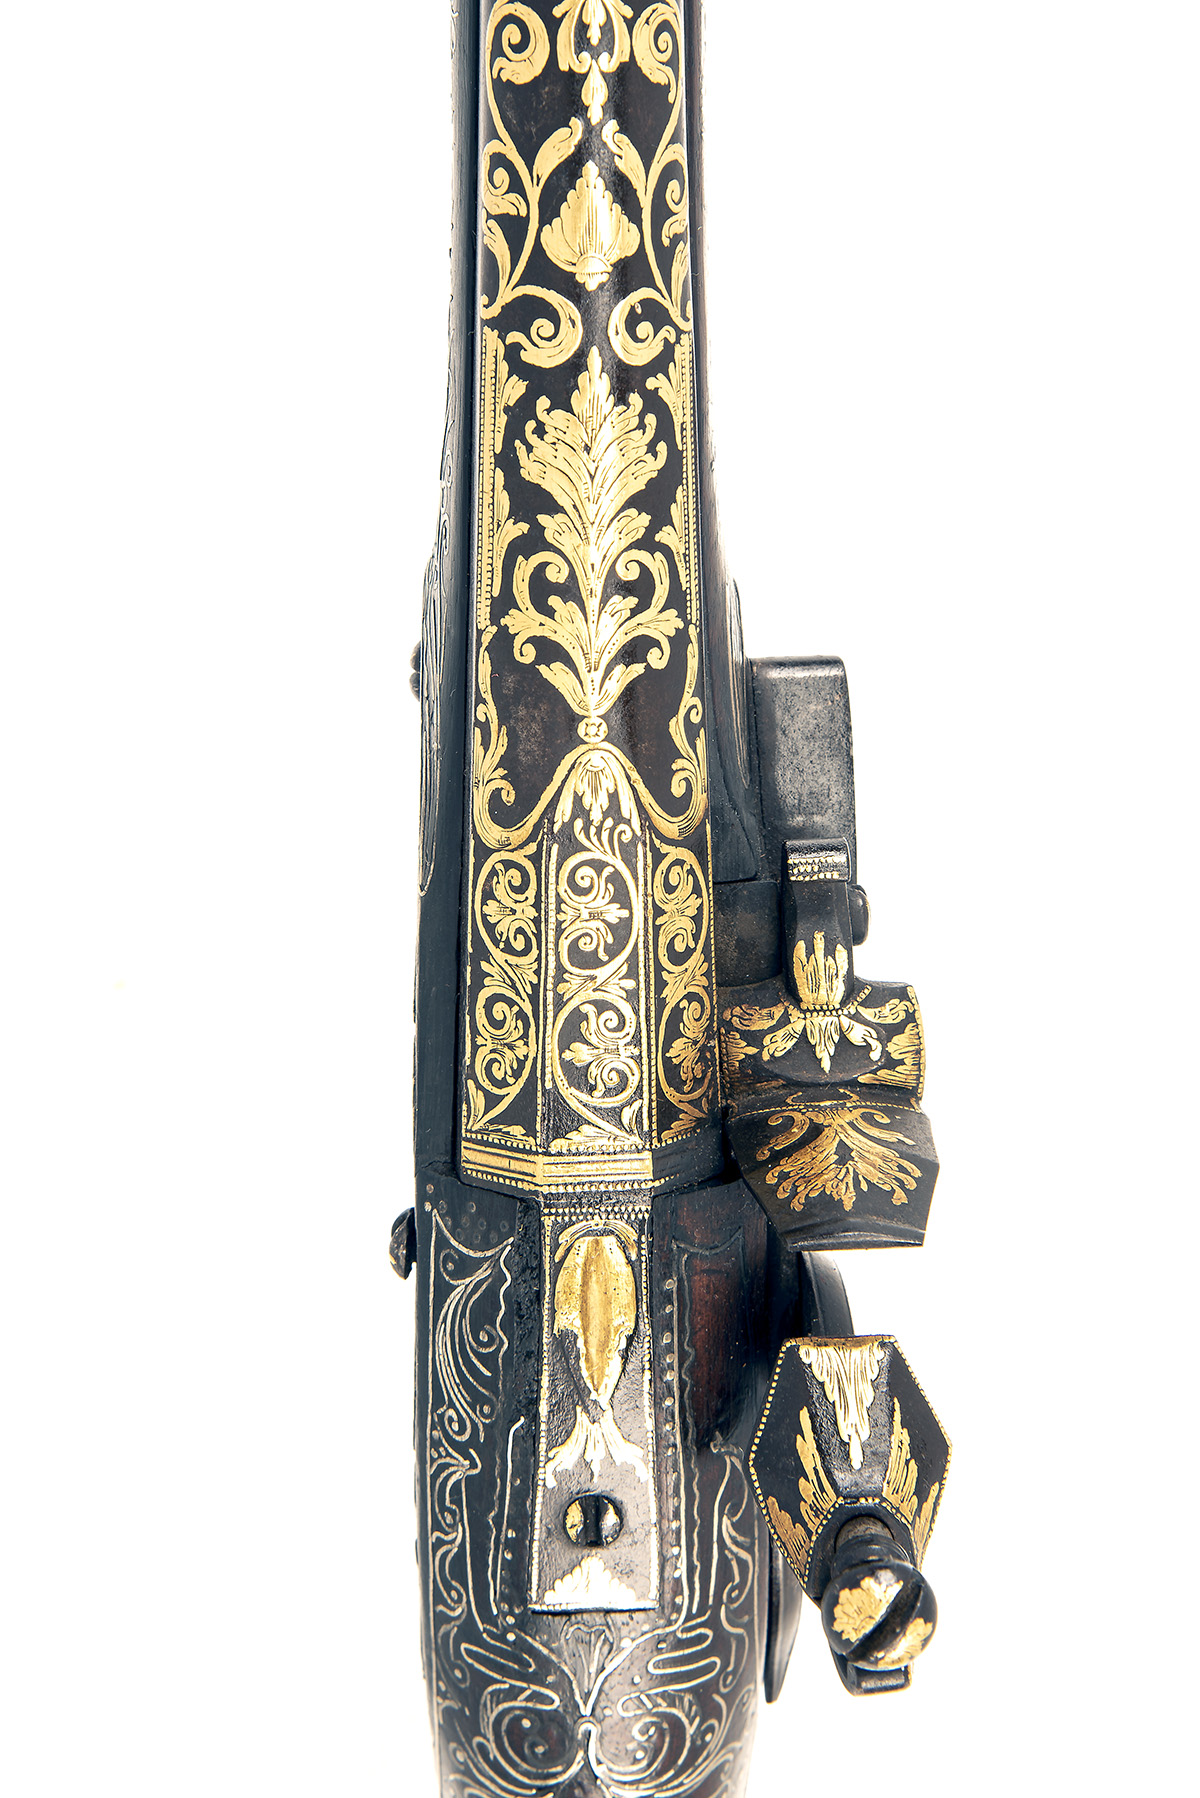 A GOOD PAIR OF 20-BORE FLINTLOCK OTTOMAN HOLSTER-PISTOLS WITH GILT DECORATION, UNSIGNED, no - Image 9 of 10